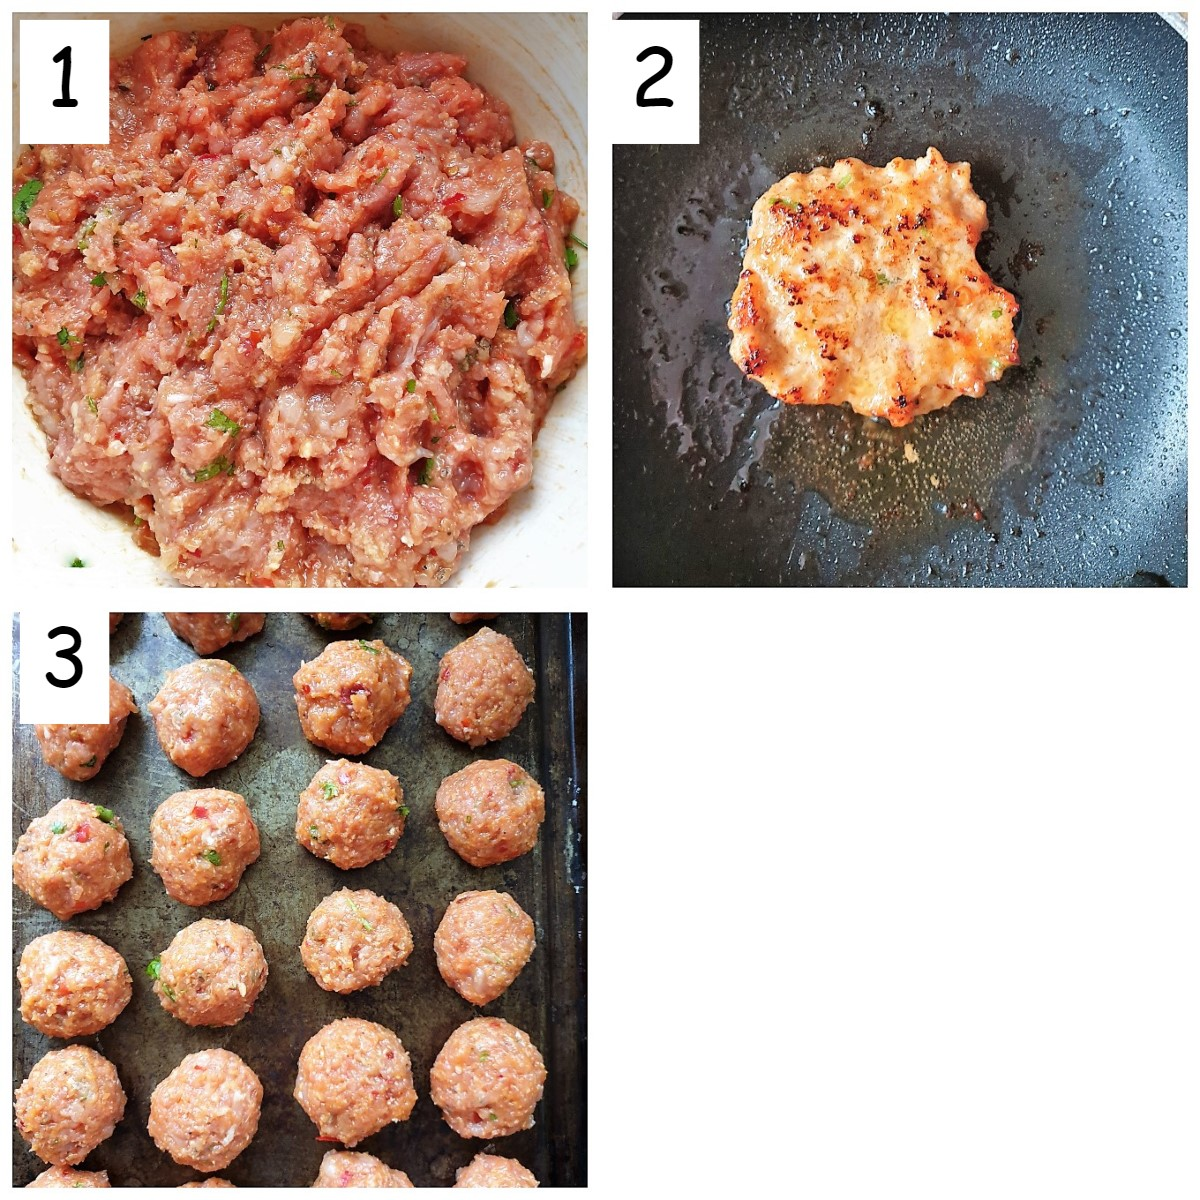 Steps for mixing and shaping the Thai meatballs